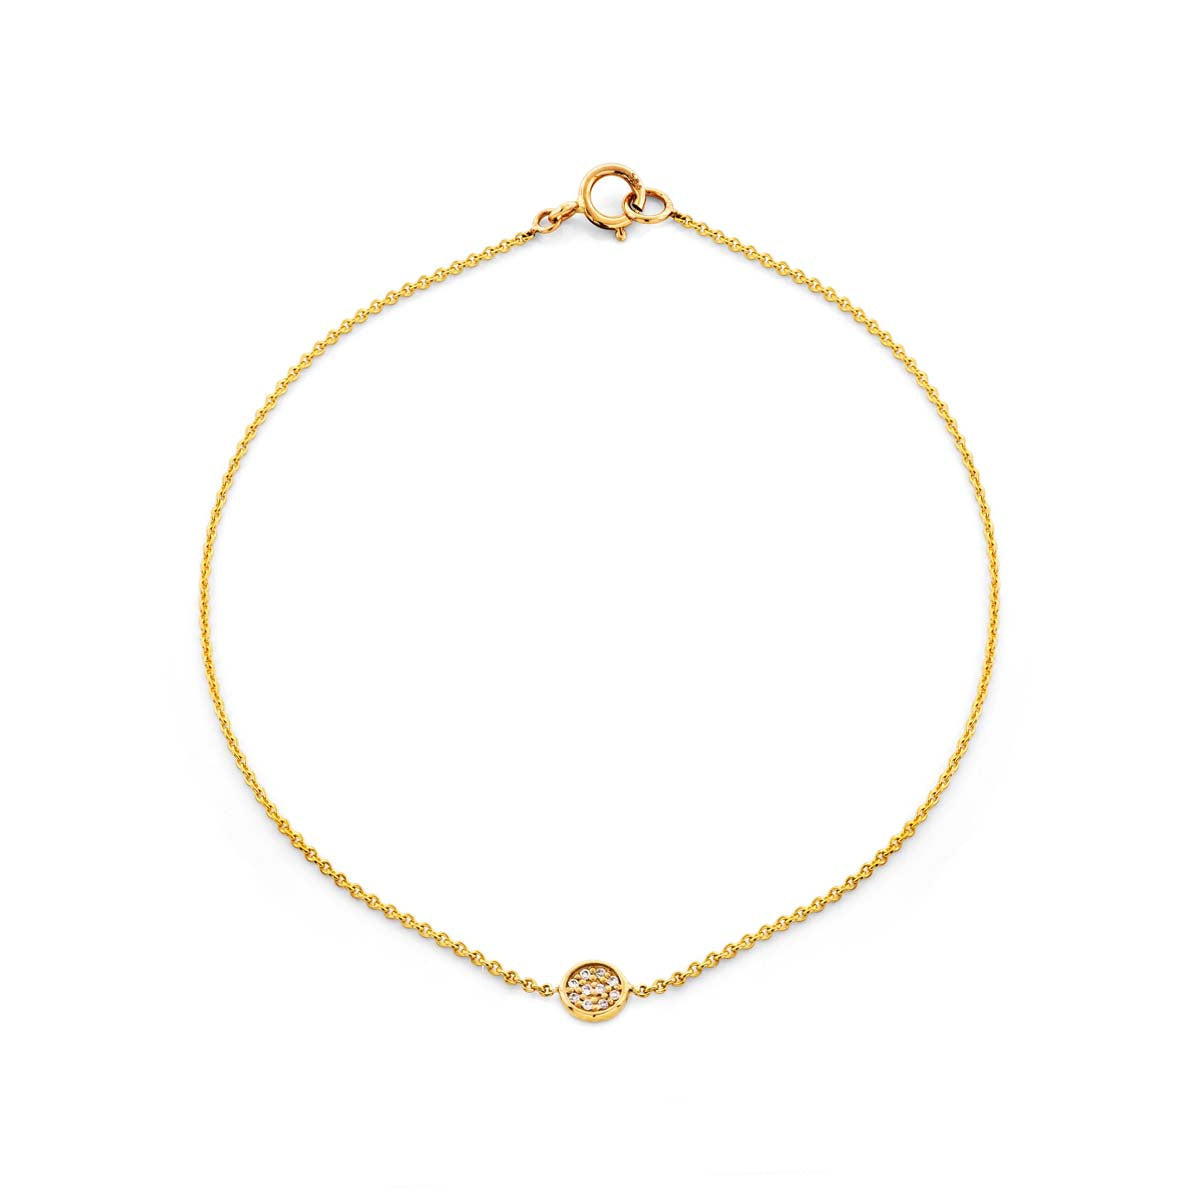 Image of a round gold & diamond medallion bracelet.